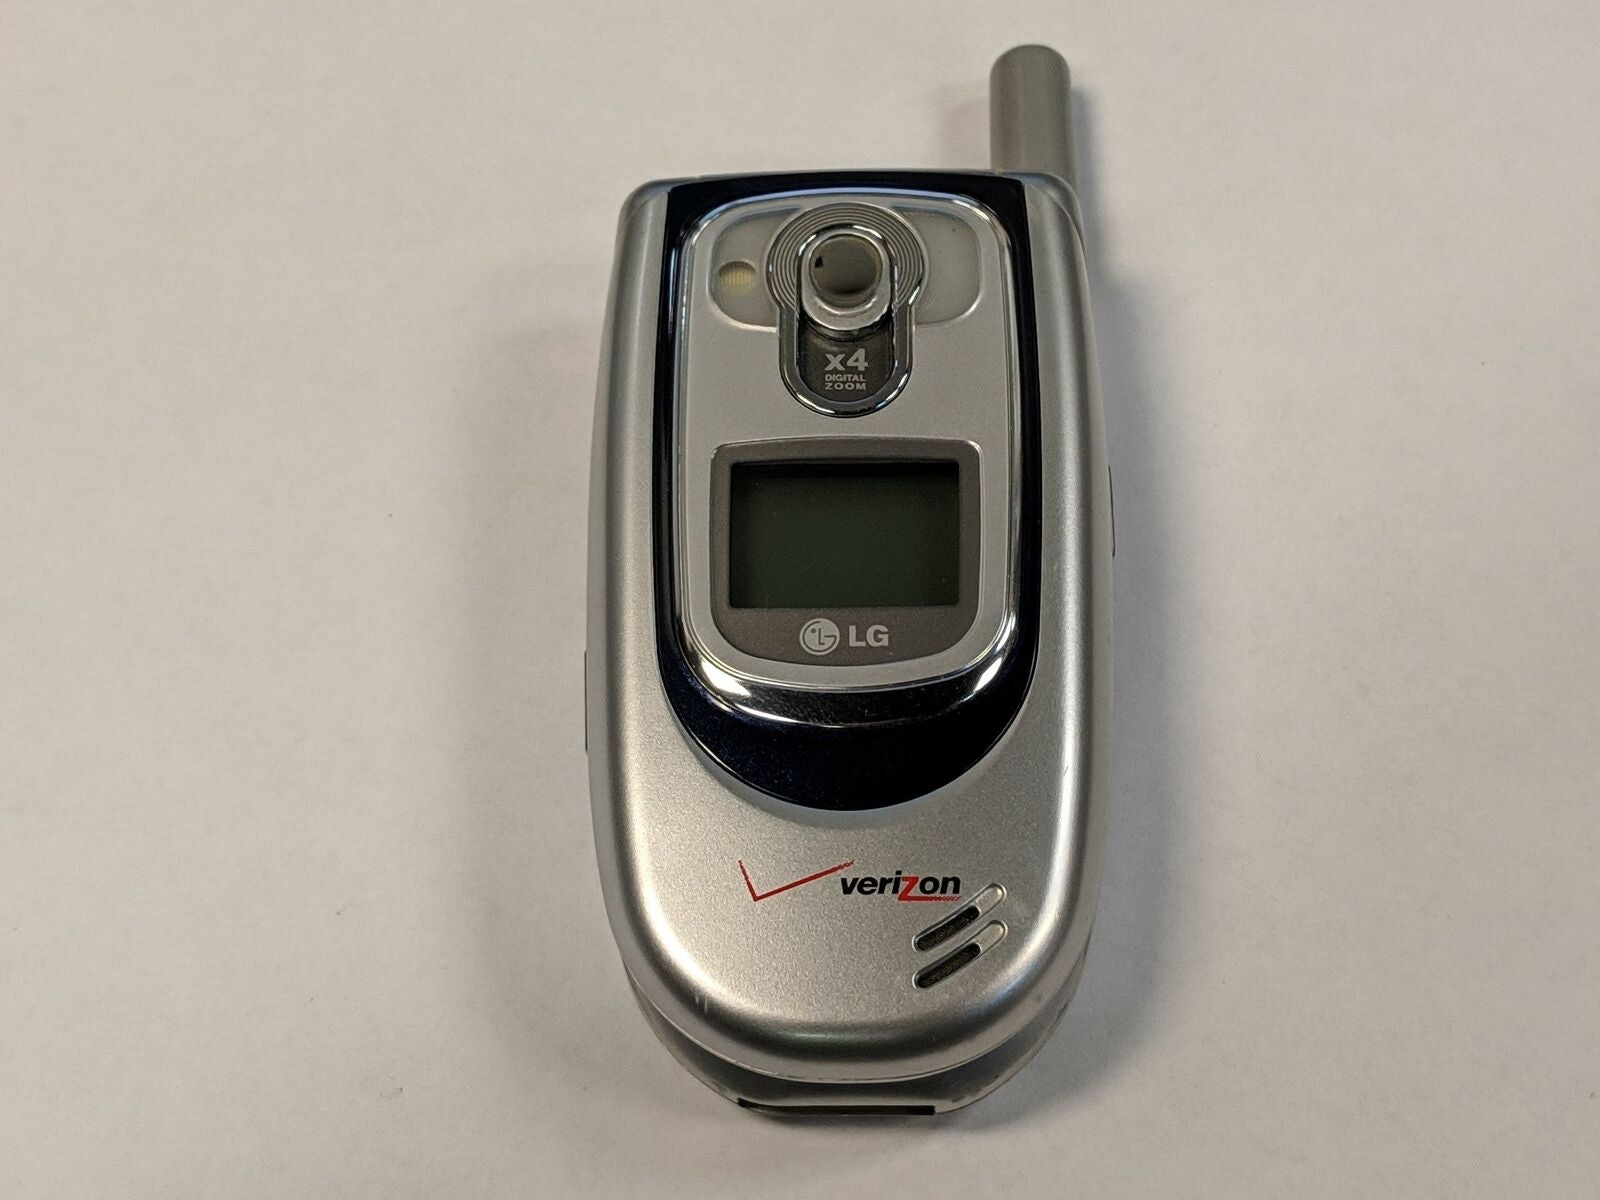 7 Cell Phones From The Early 2000s Everyone Loved Because You